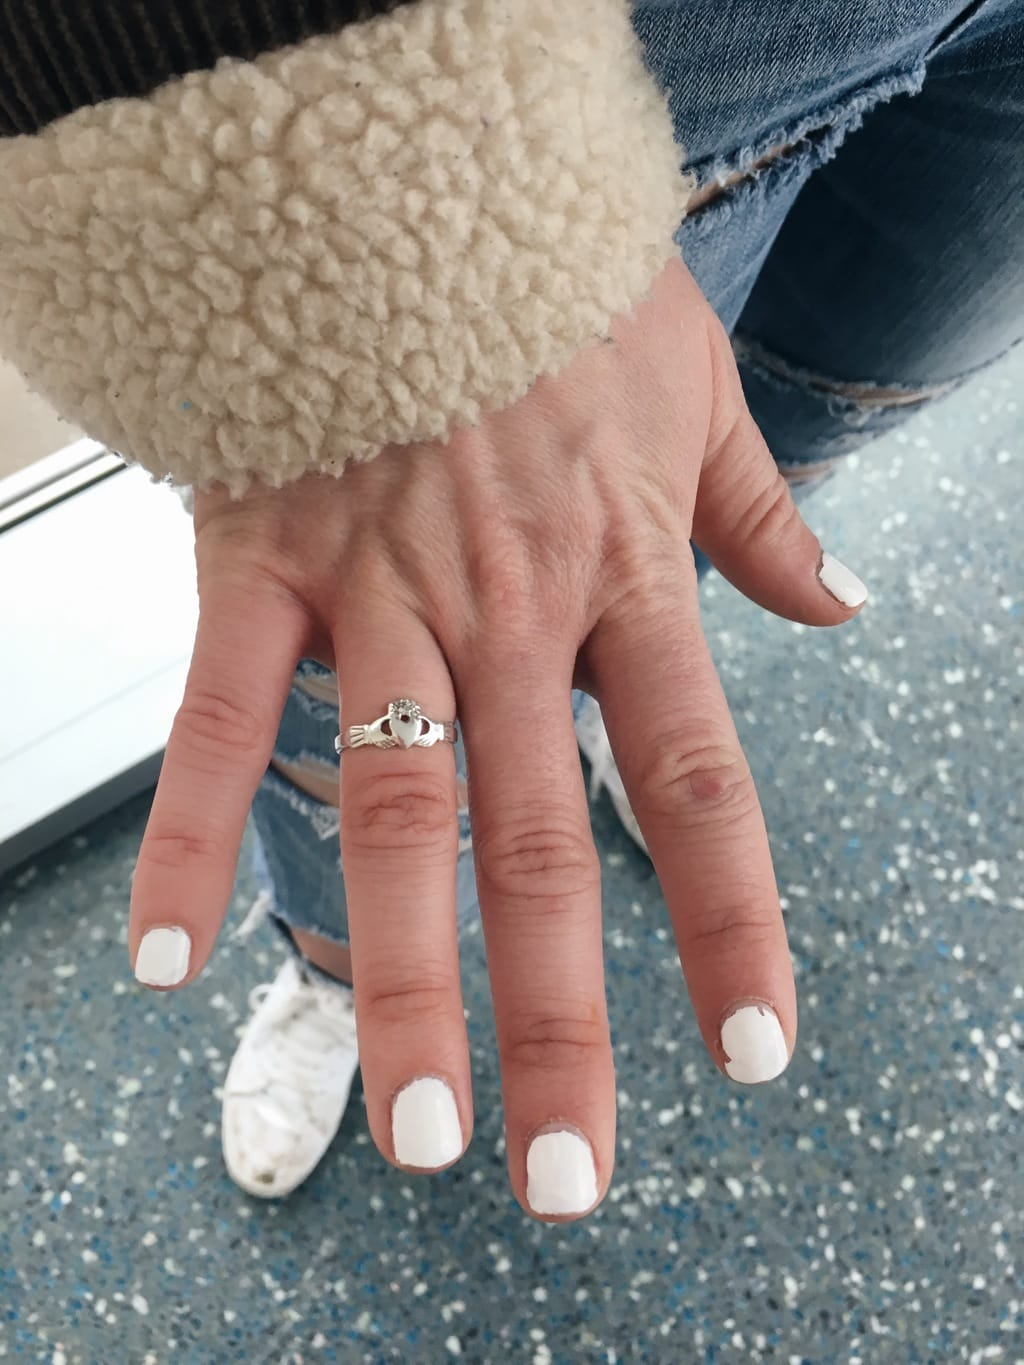 This dainty silver claddagh ring symbolizes Erin's relationship status.